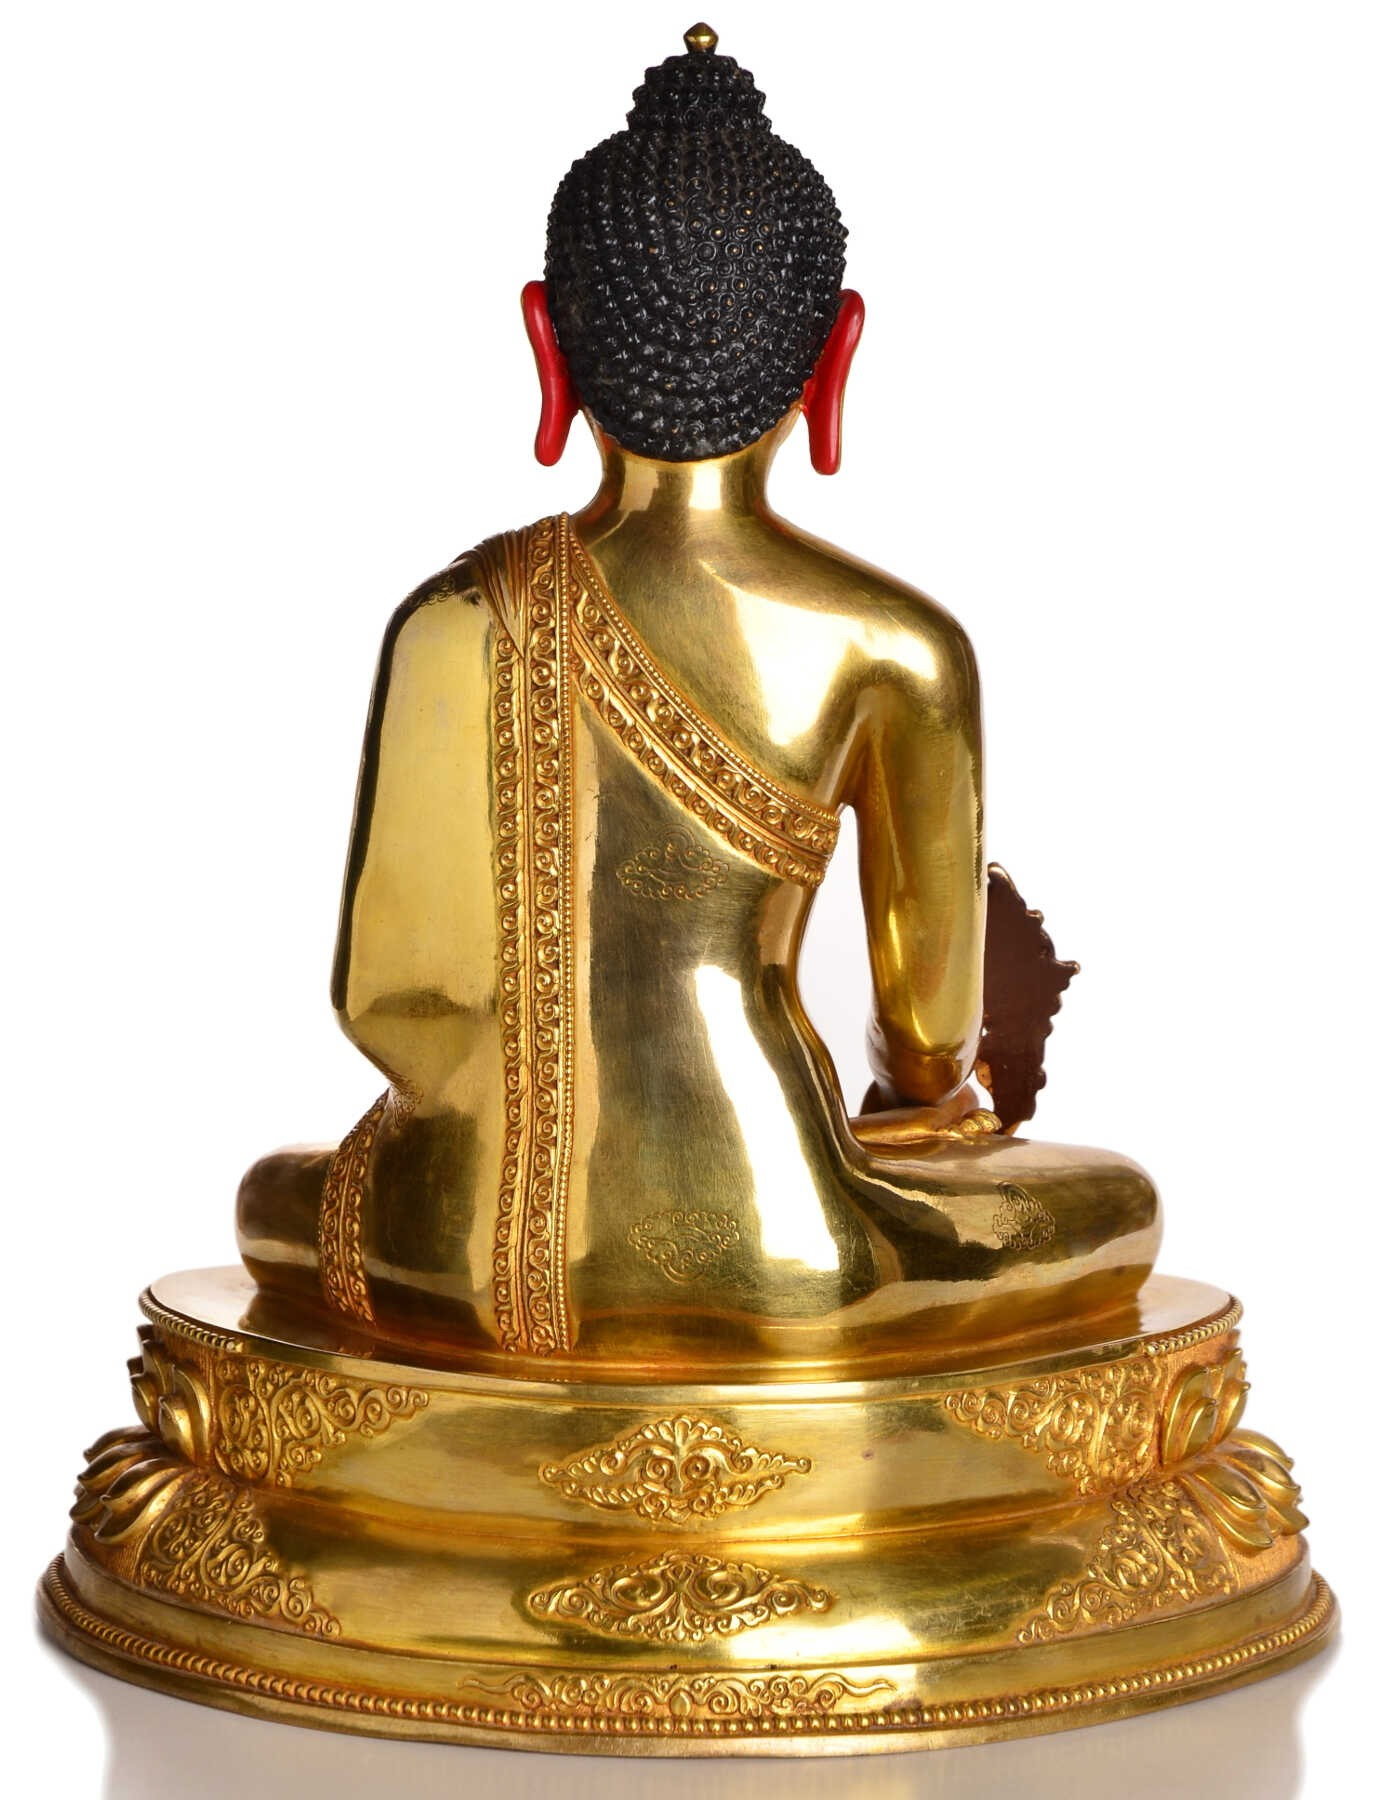 medizin buddha replika statue vollfeuervergoldet 20 cm nepal kaufen. Black Bedroom Furniture Sets. Home Design Ideas